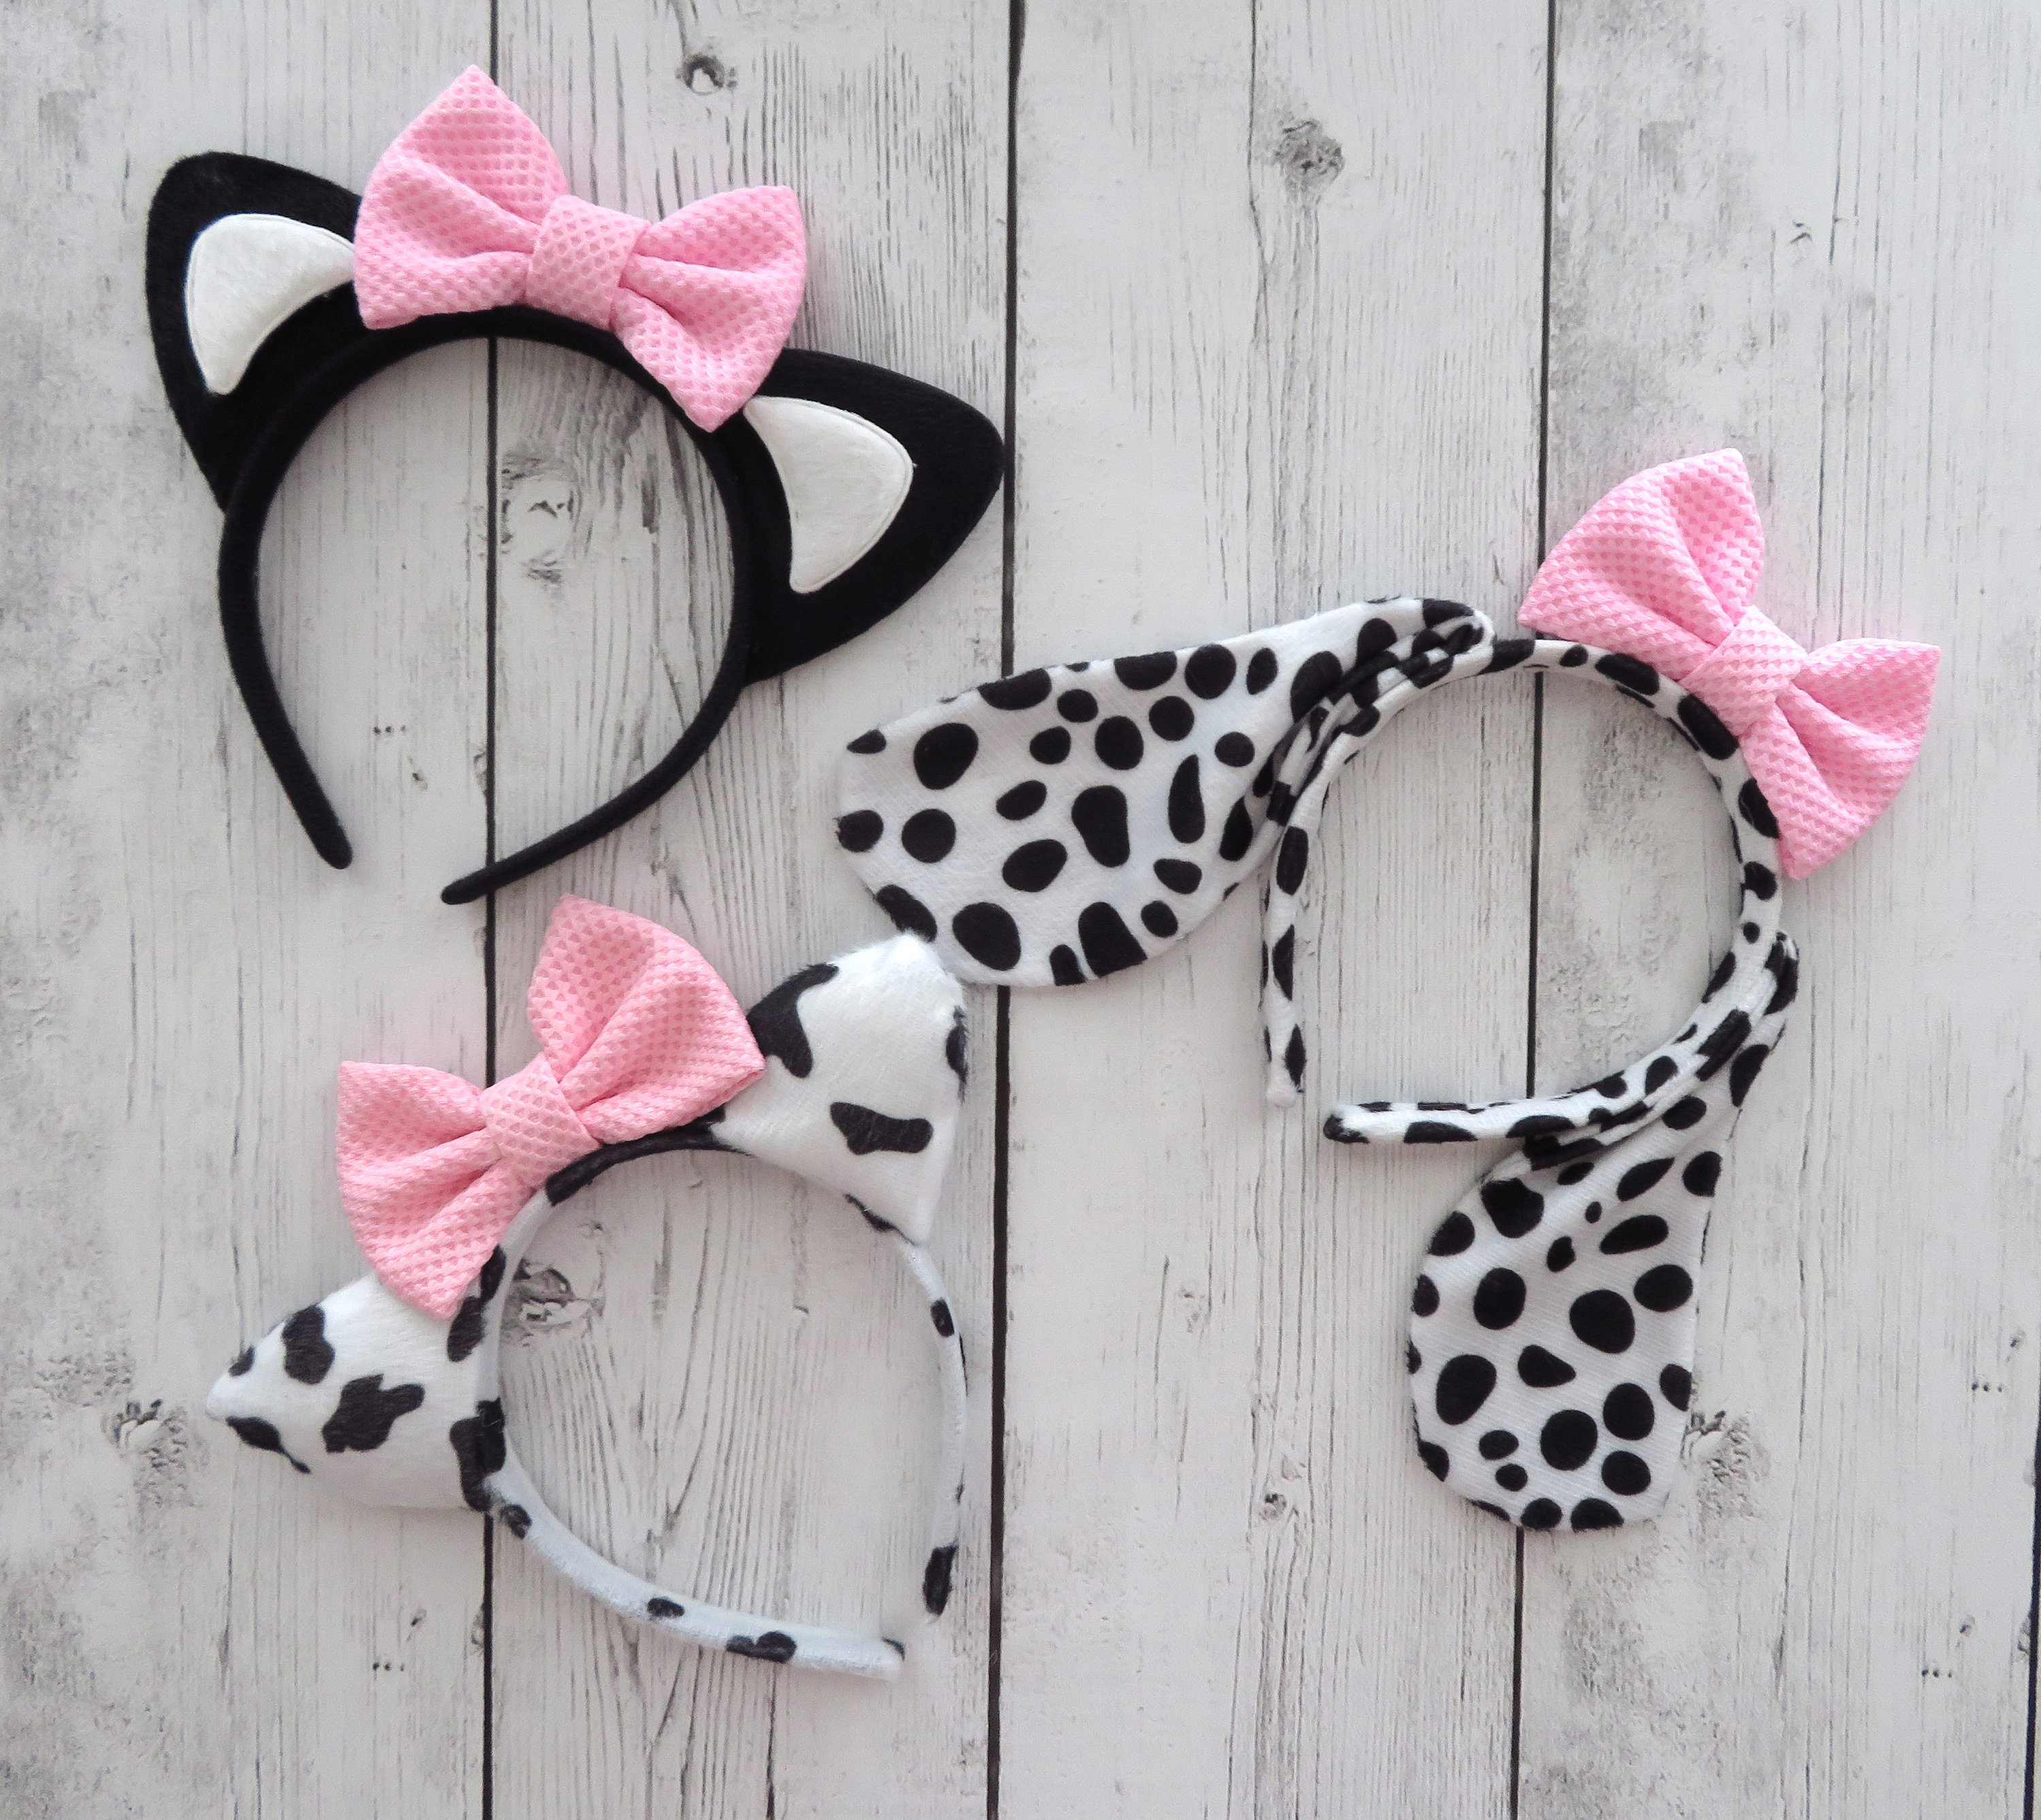 Halloween Costume Ears - cat ears, cow ears, dog ears, dalmation ears, halloween costume headband, cow costume, cat costume, dog costume